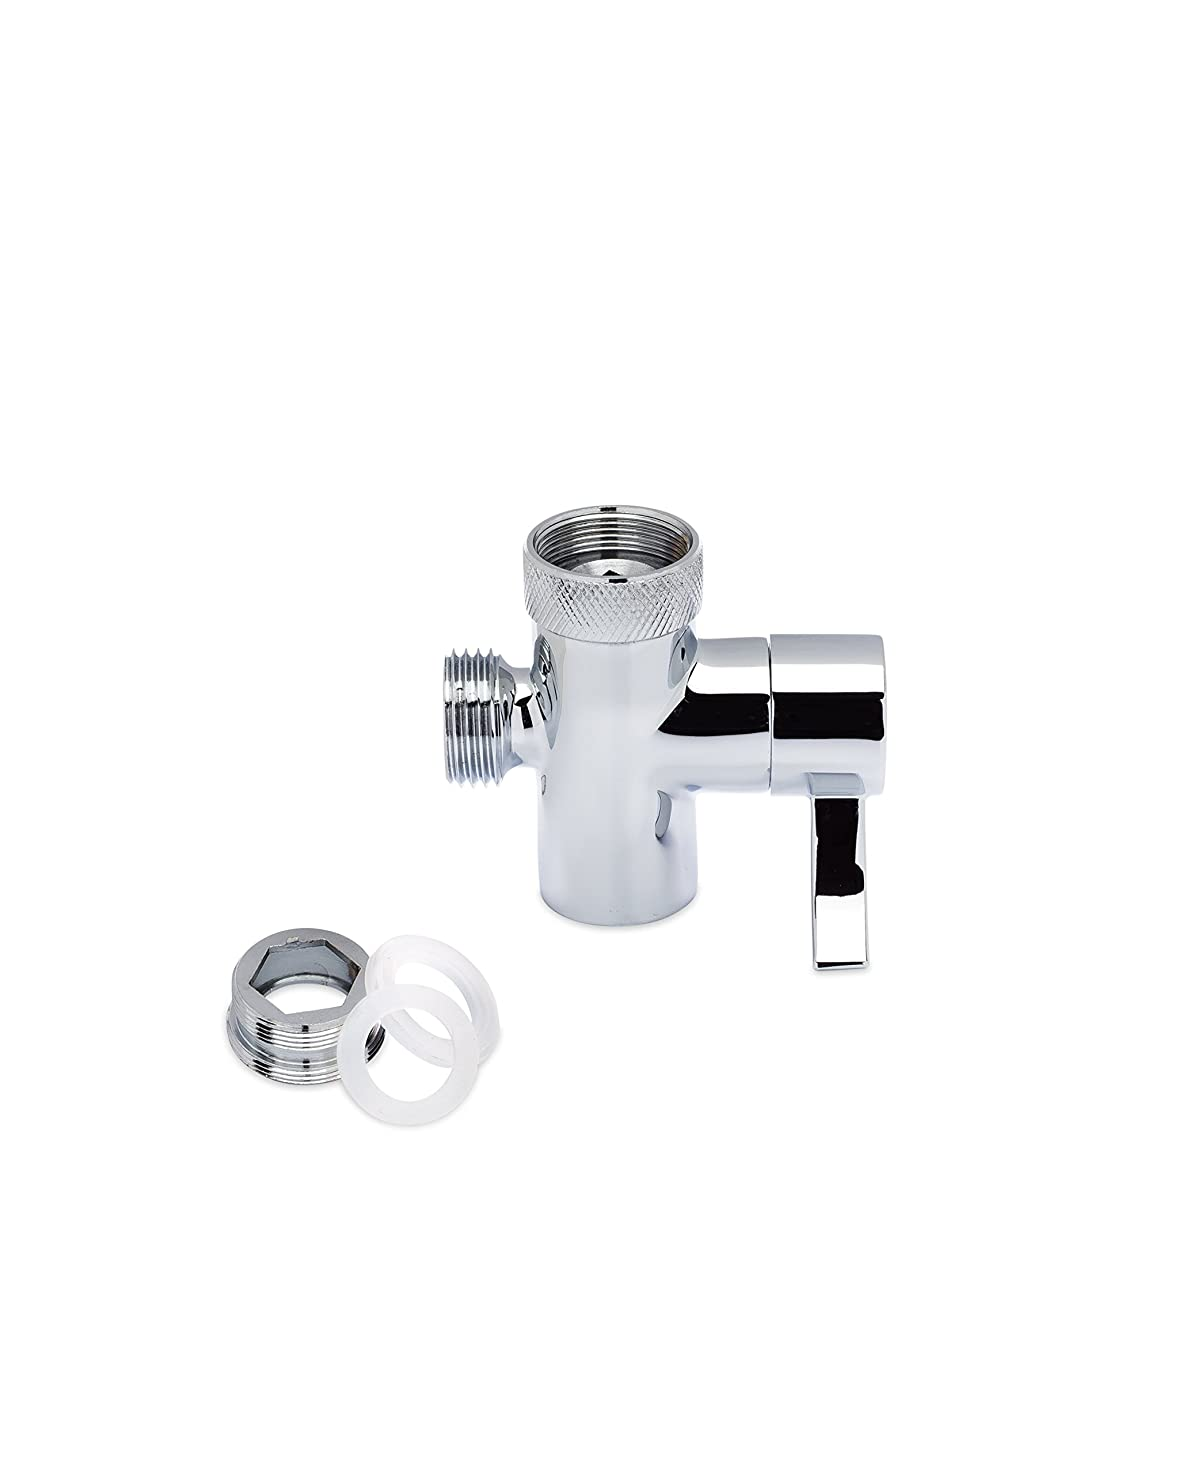 SmarterFresh Faucet Diverter Valve With Aerator and Male Threaded Adapter, Faucet Adapter for Hose Attachment, Faucet Connector for Water Diversion jtwdmpsjehvcq0